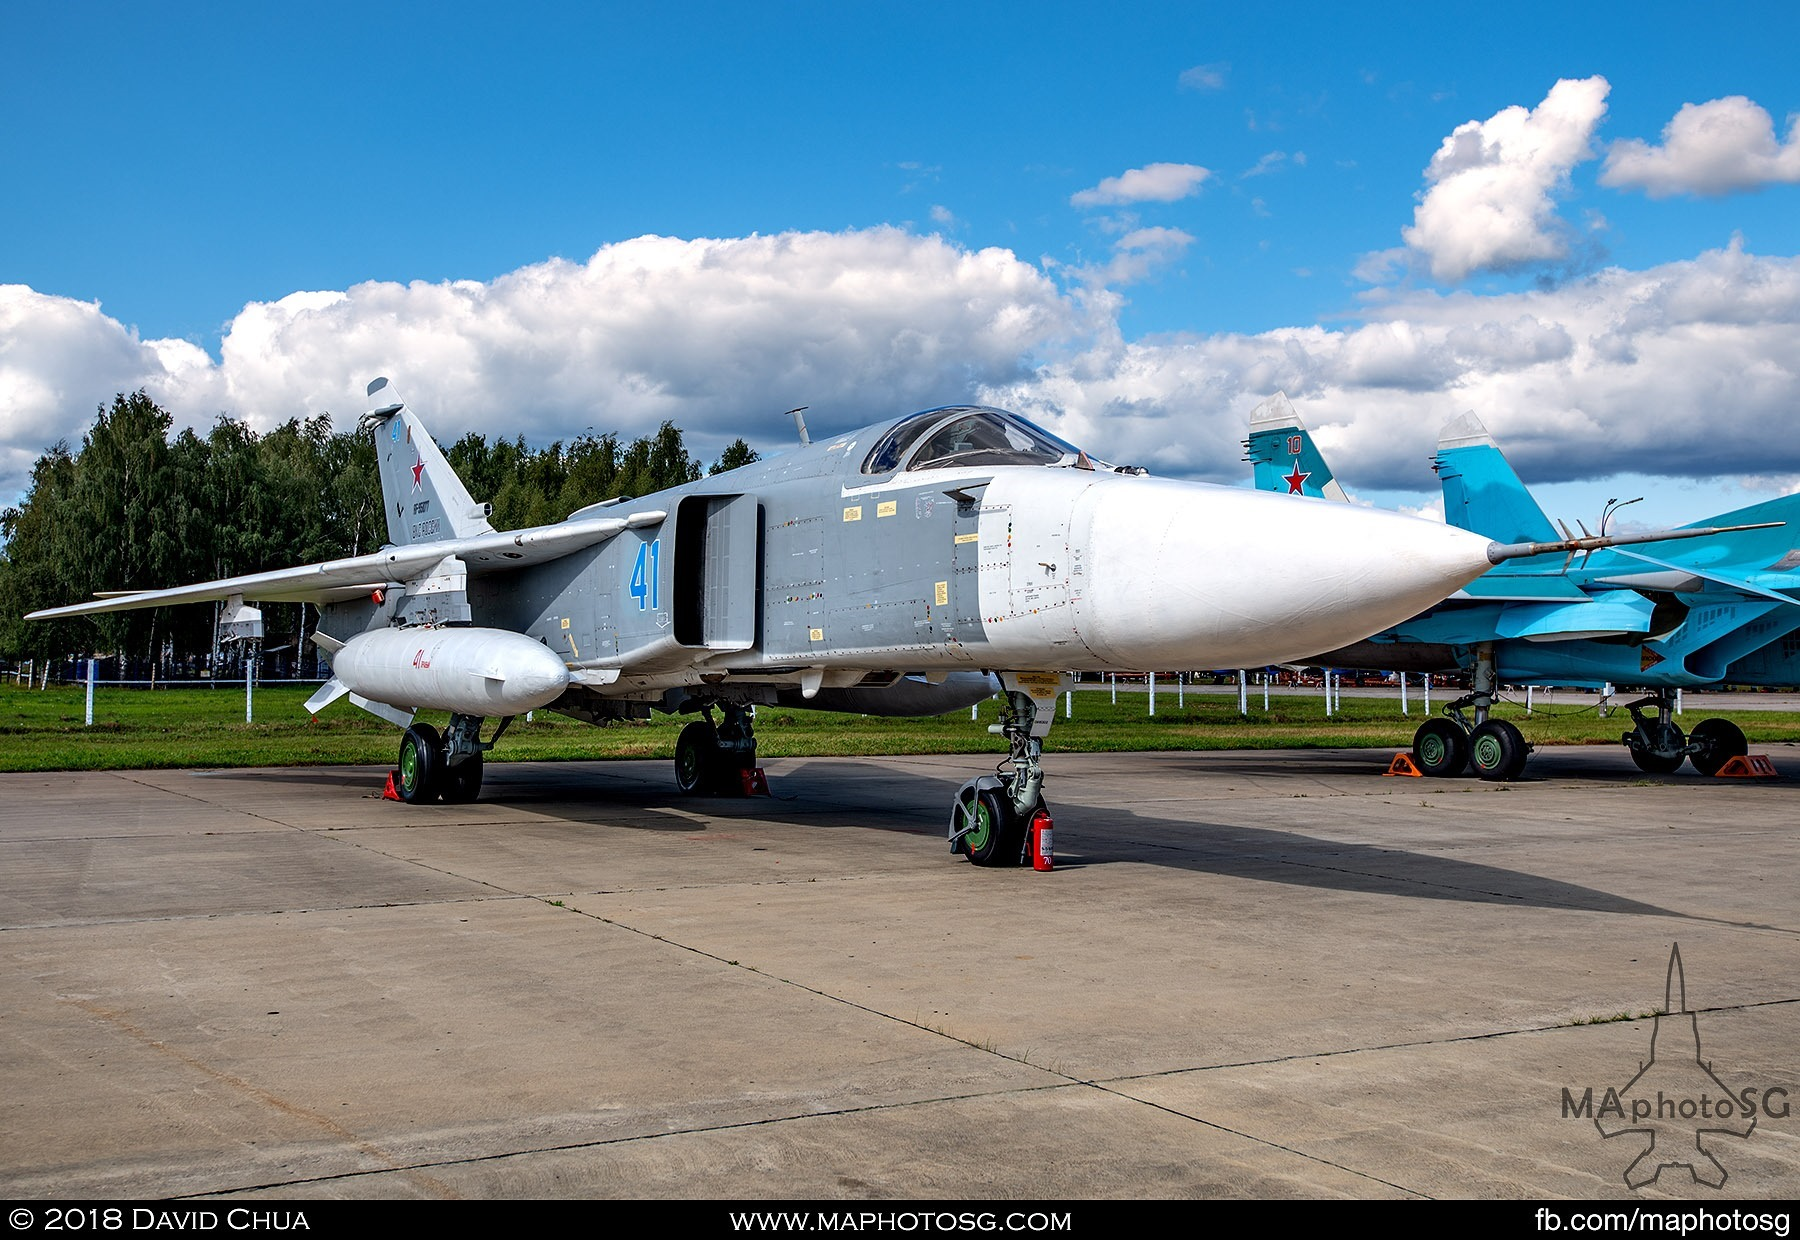 "28. Russian Air Force Sukhoi Su-24m ""Fencer"" all weather attack aircraft"